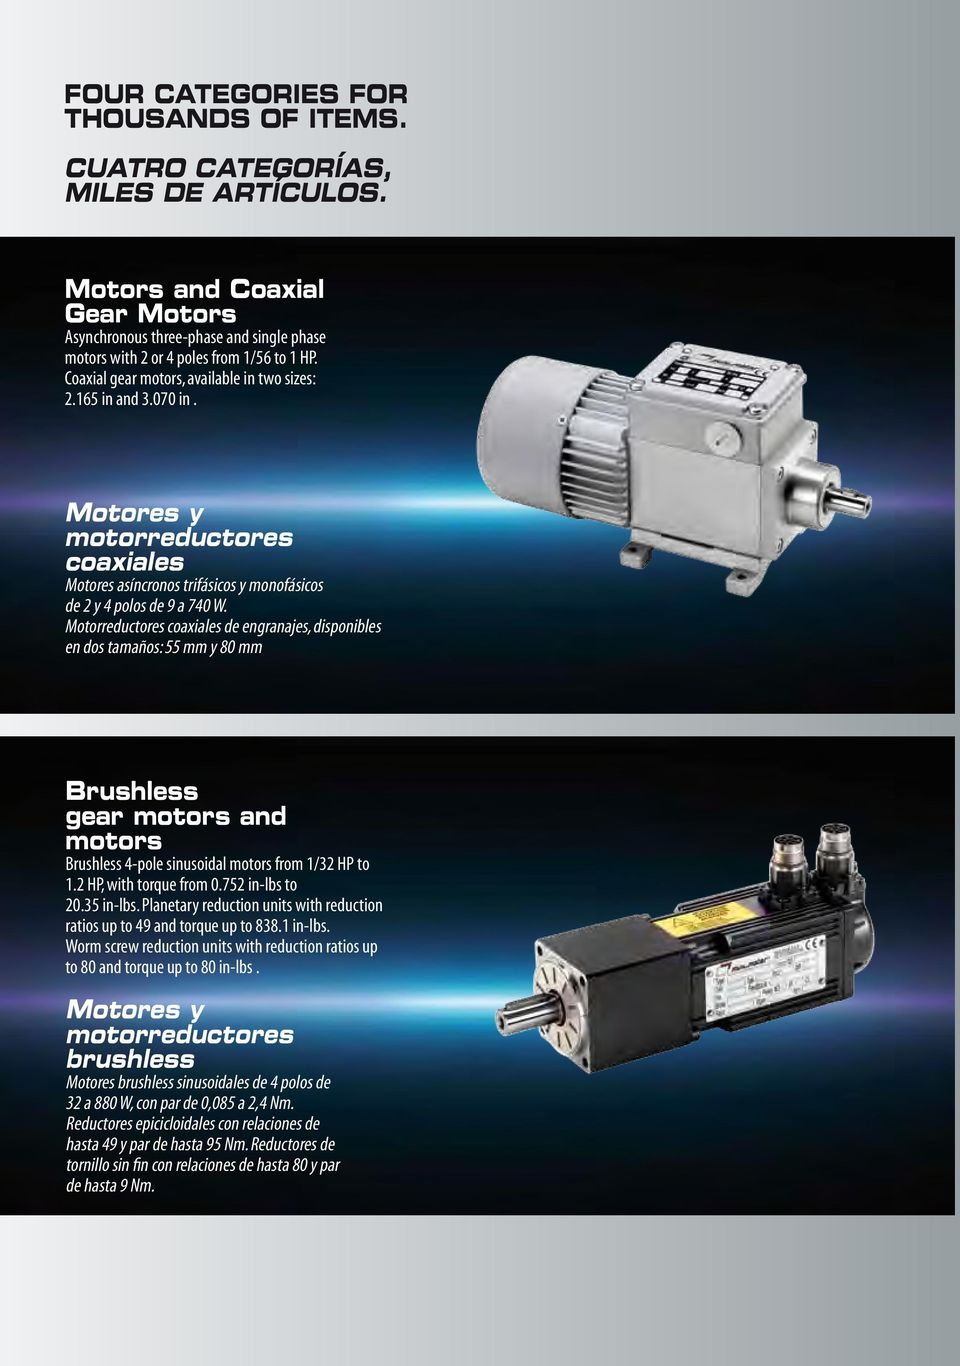 Motorreductores coaxiales de engranajes, disponibles en dos tamaños: 55 mm y 80 mm Brushless gear motors and motors Brushless 4-pole sinusoidal motors from 1/32 HP to 1.2 HP, with torque from 0.